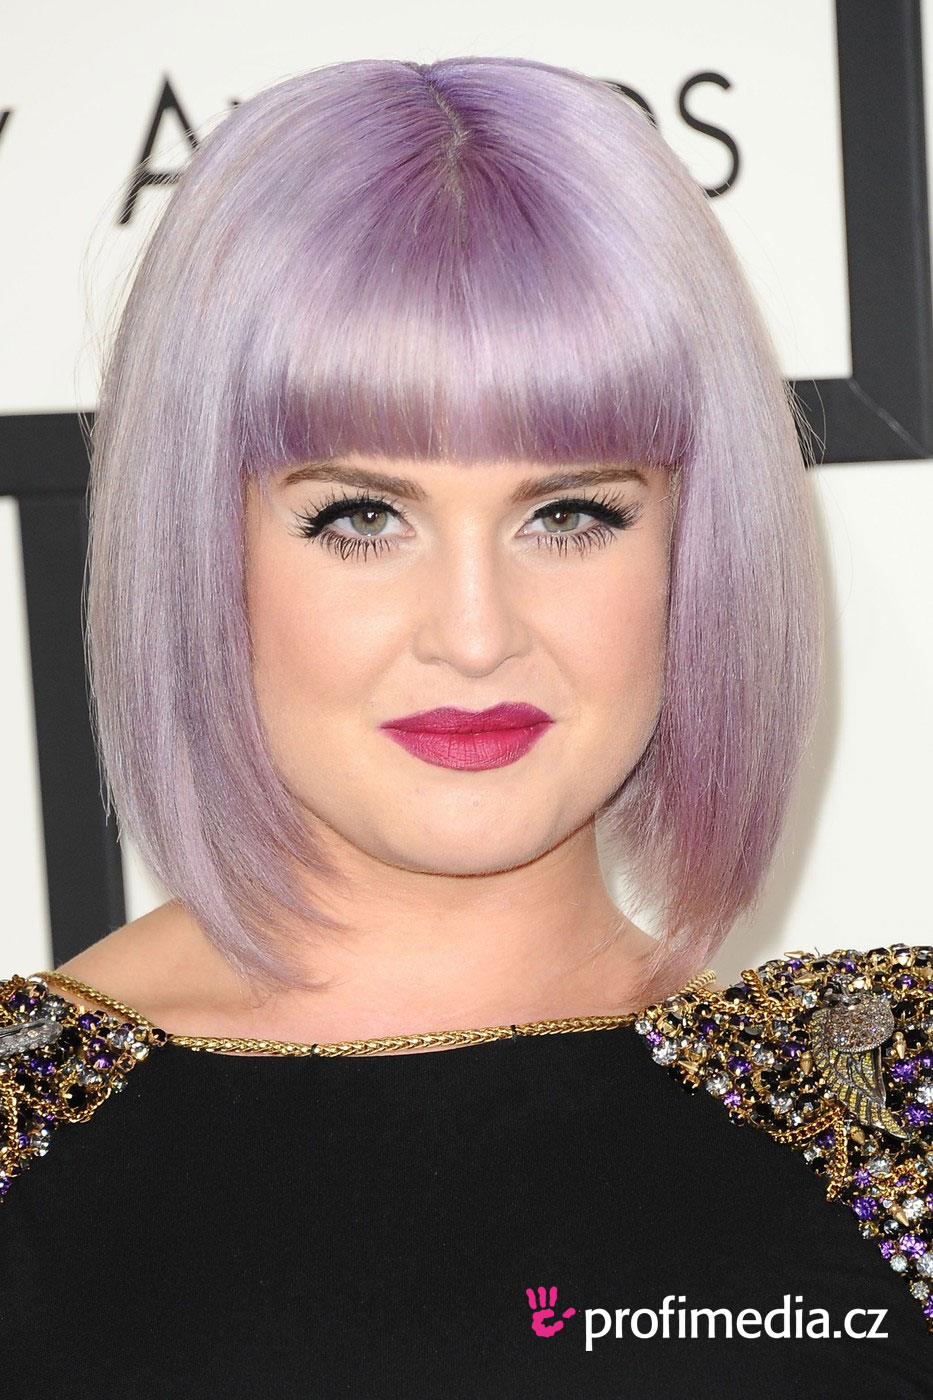 kelly osbourne frisur zum ausprobieren in efrisuren. Black Bedroom Furniture Sets. Home Design Ideas